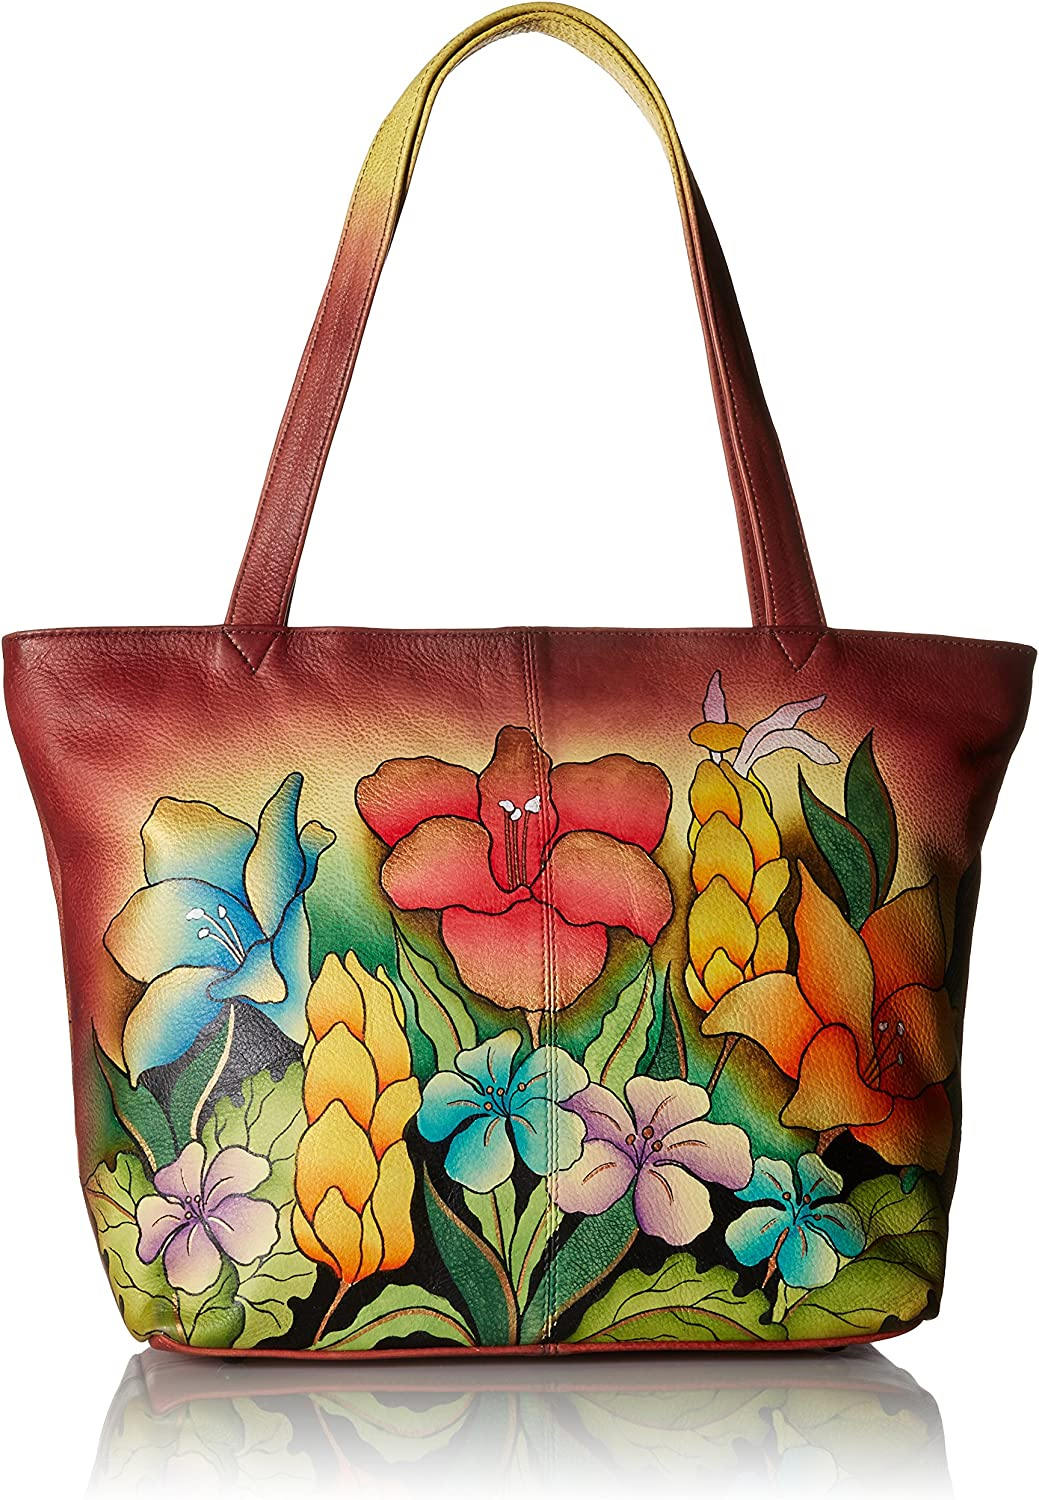 Anna by Anuschka Tote Bag | Genuine Leather